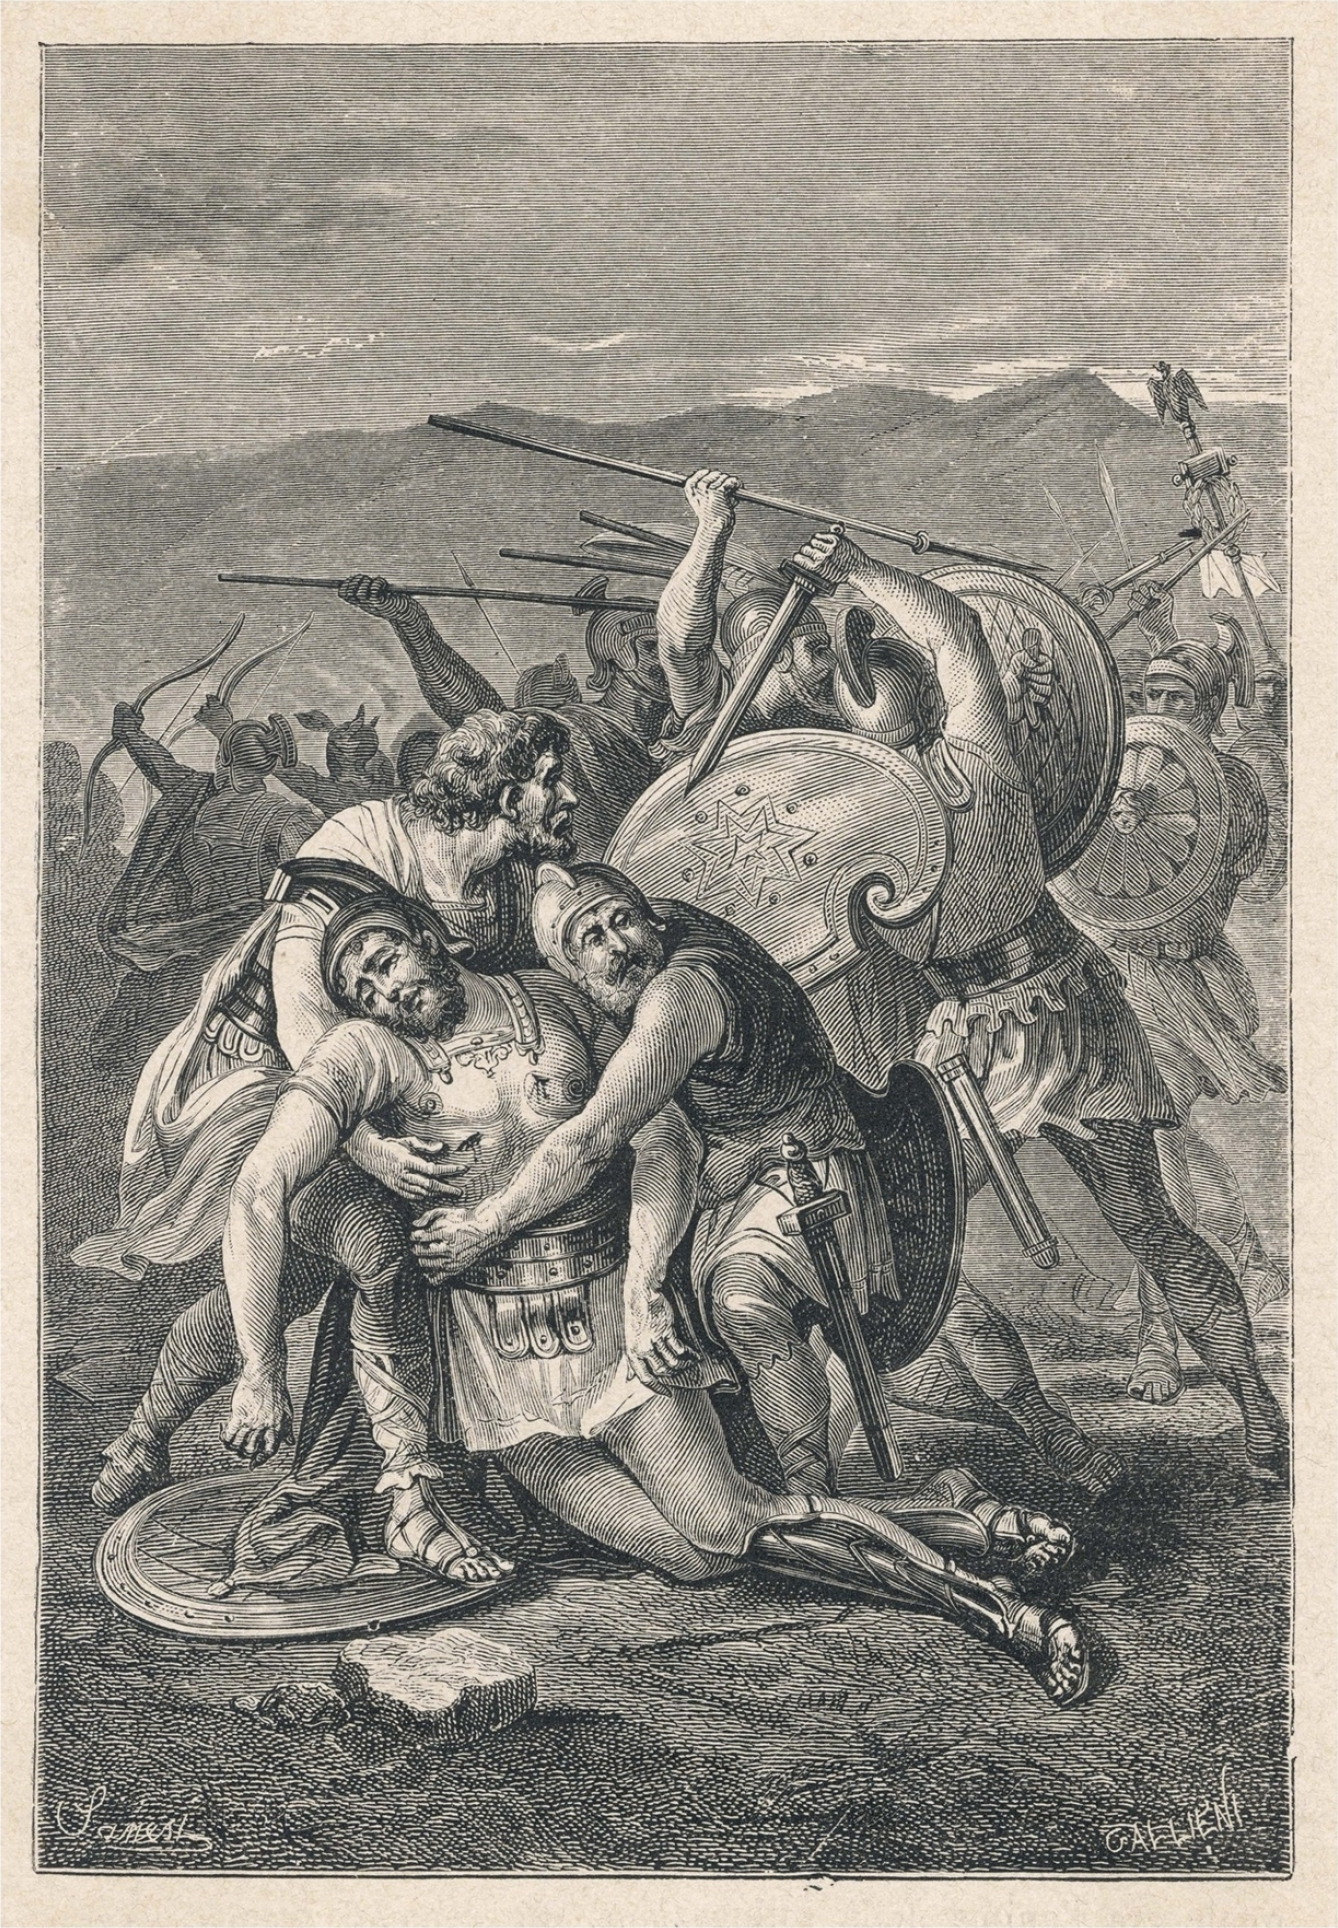 ancient rome and spartacus Little is known about this fighting slave from thrace beyond his role in the spectacular revolt that became known as the third servile war (73–71 bc) but sources agree that spartacus had once fought for rome as a legionnaire and was enslaved and sold to become a gladiator in 73 bc, he and a.